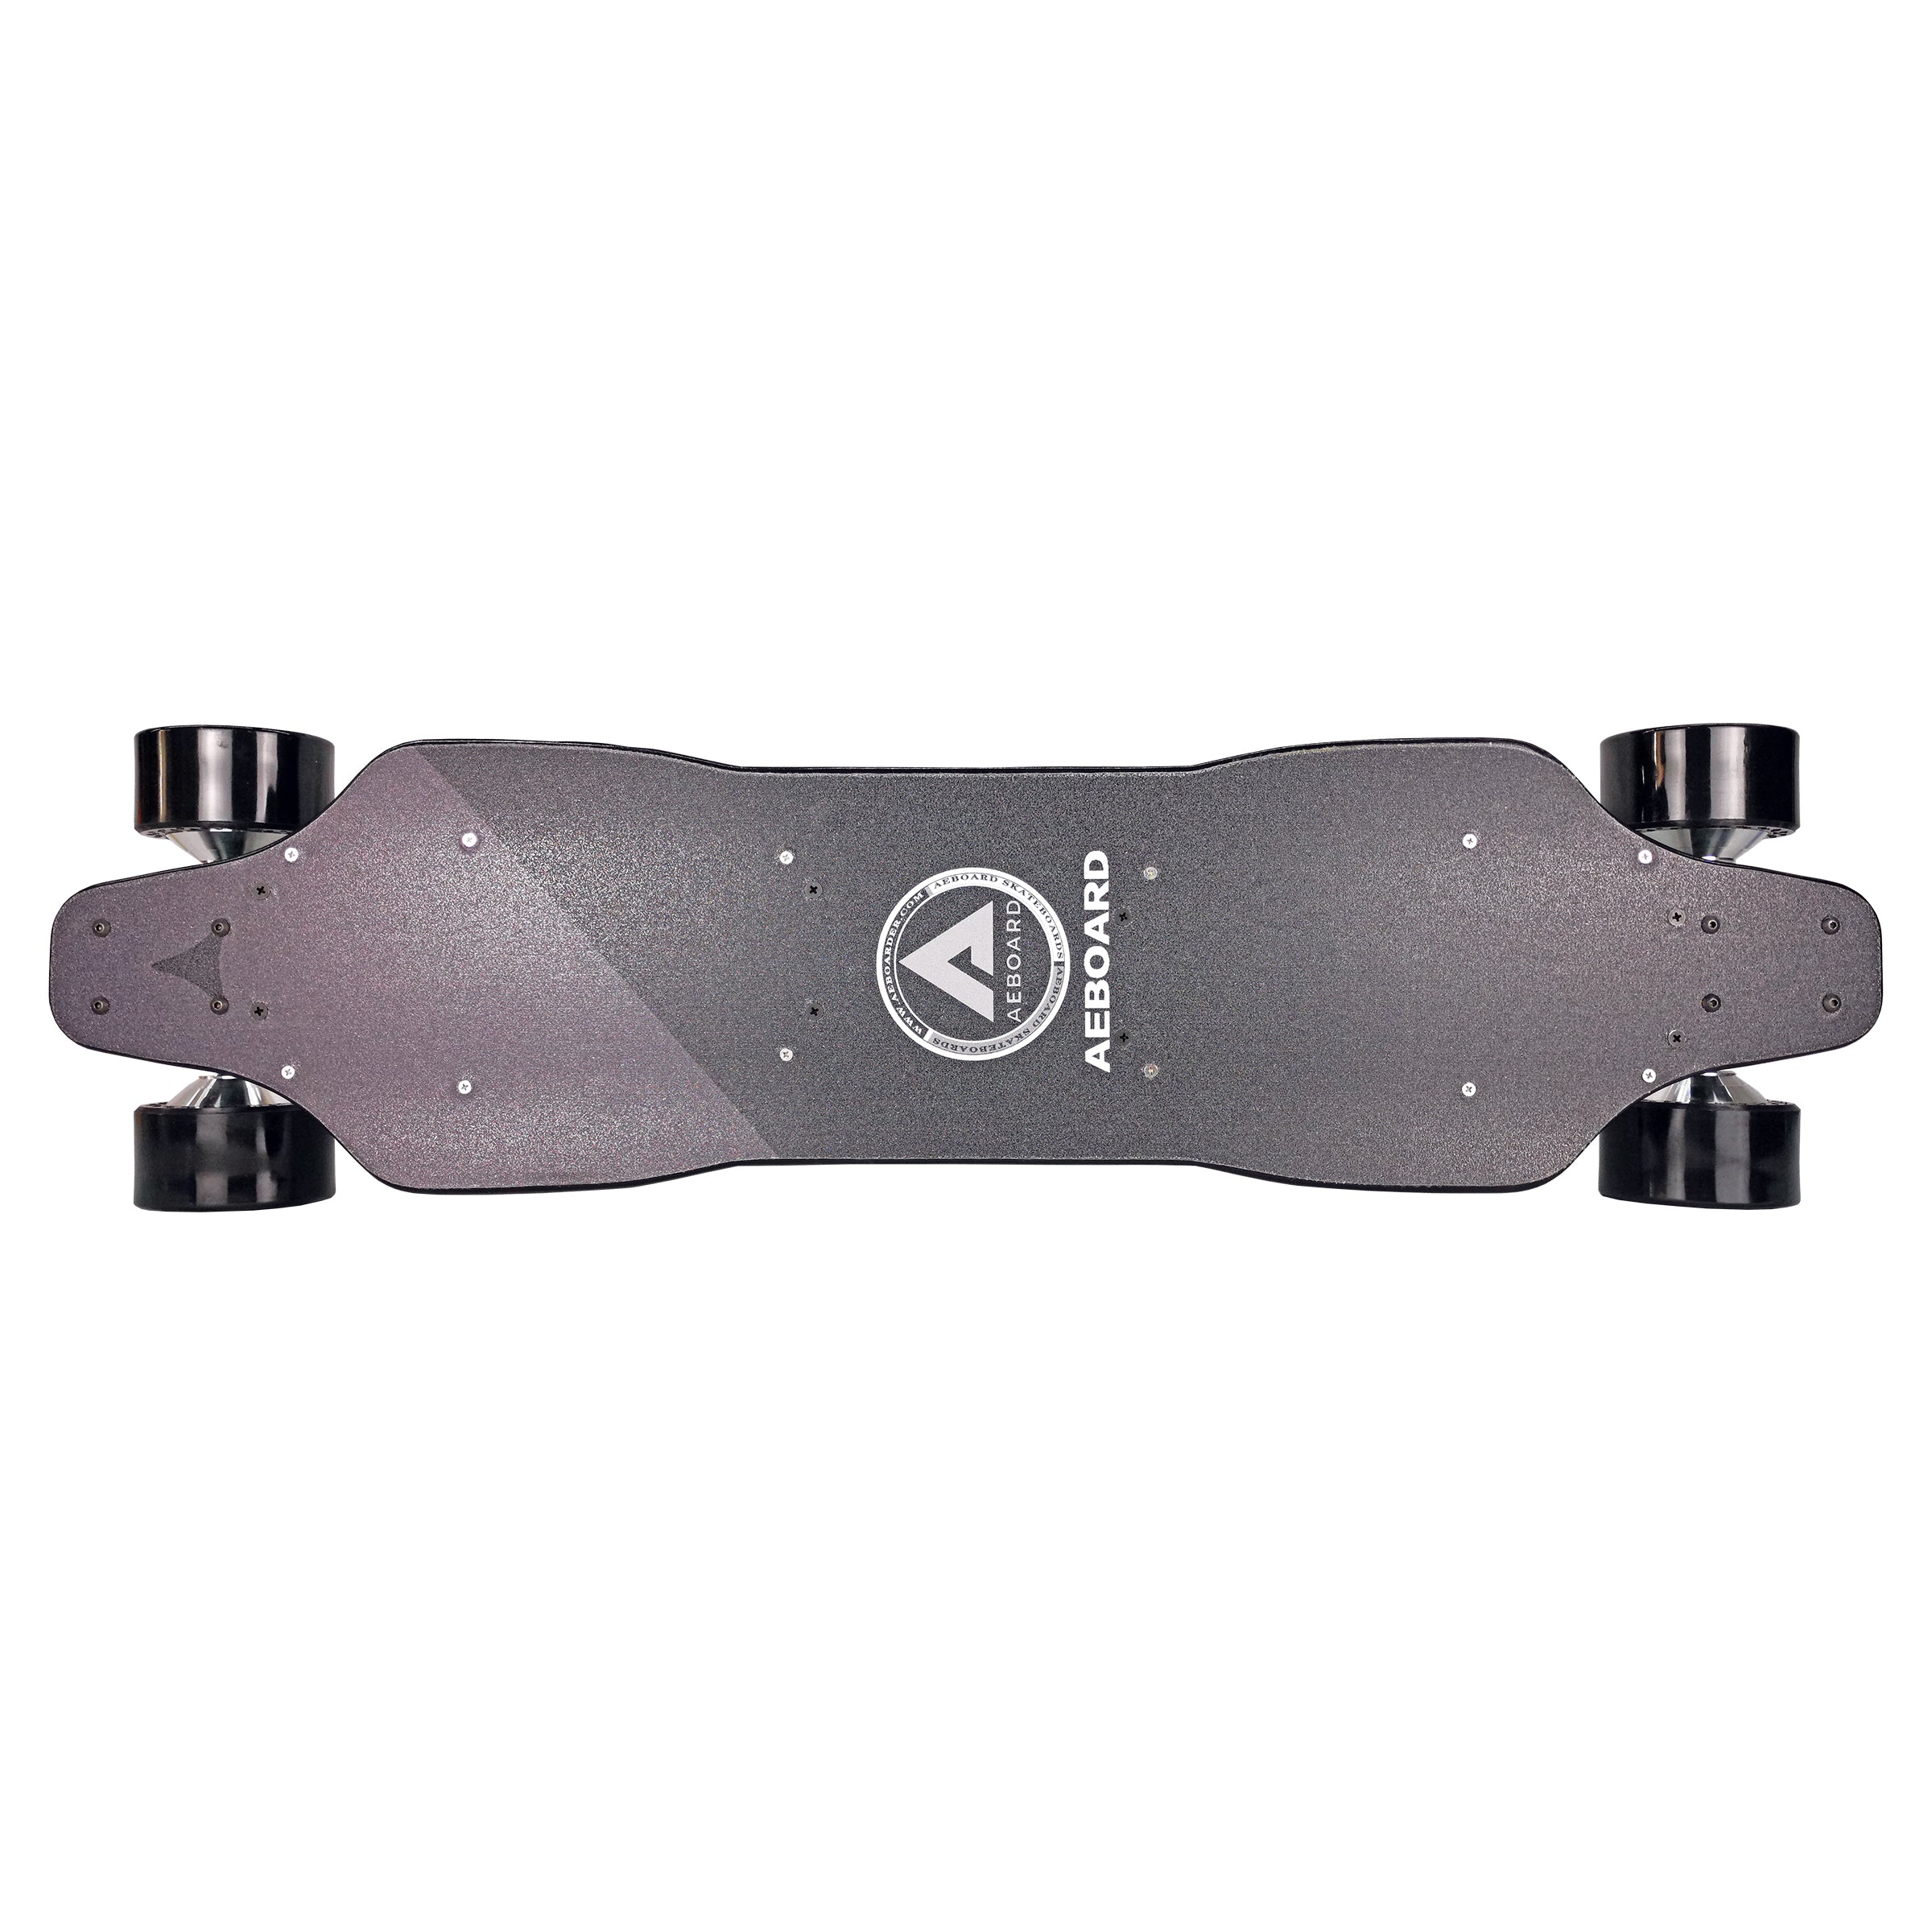 Aeboard AWD Electric Longboard Skateboard